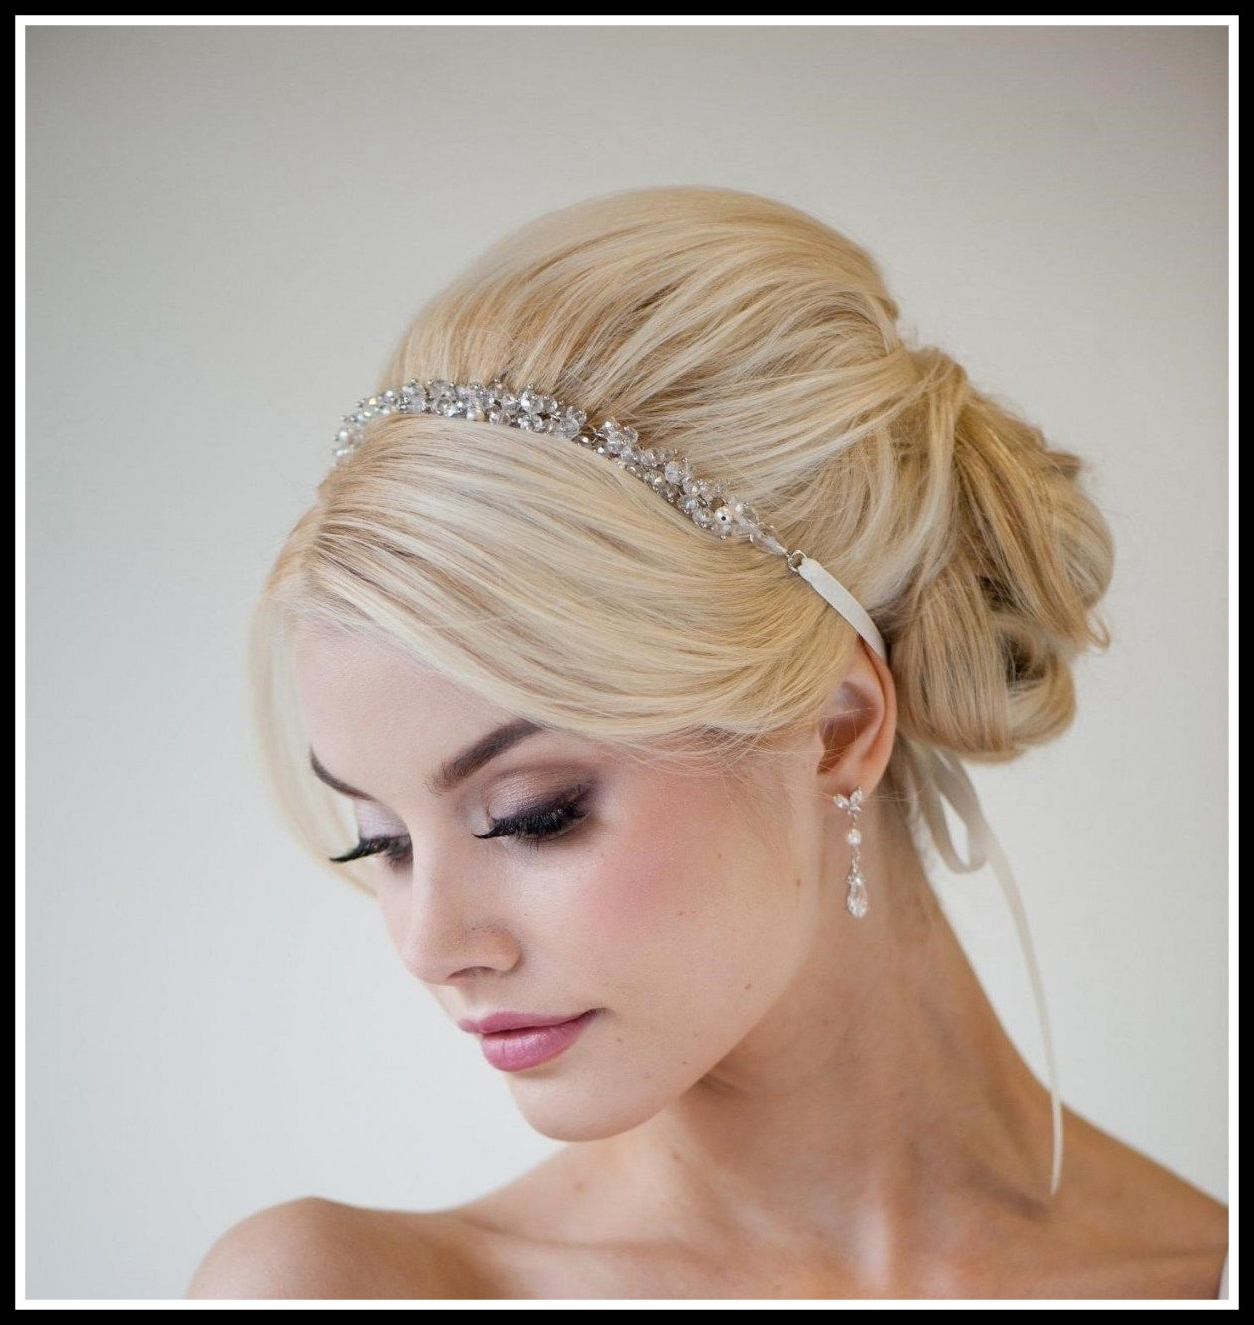 Amazing Medium Length Wedding Hairstyles With Headband Picture For Intended For Recent Wedding Hairstyles For Long Hair With Headband (View 6 of 15)